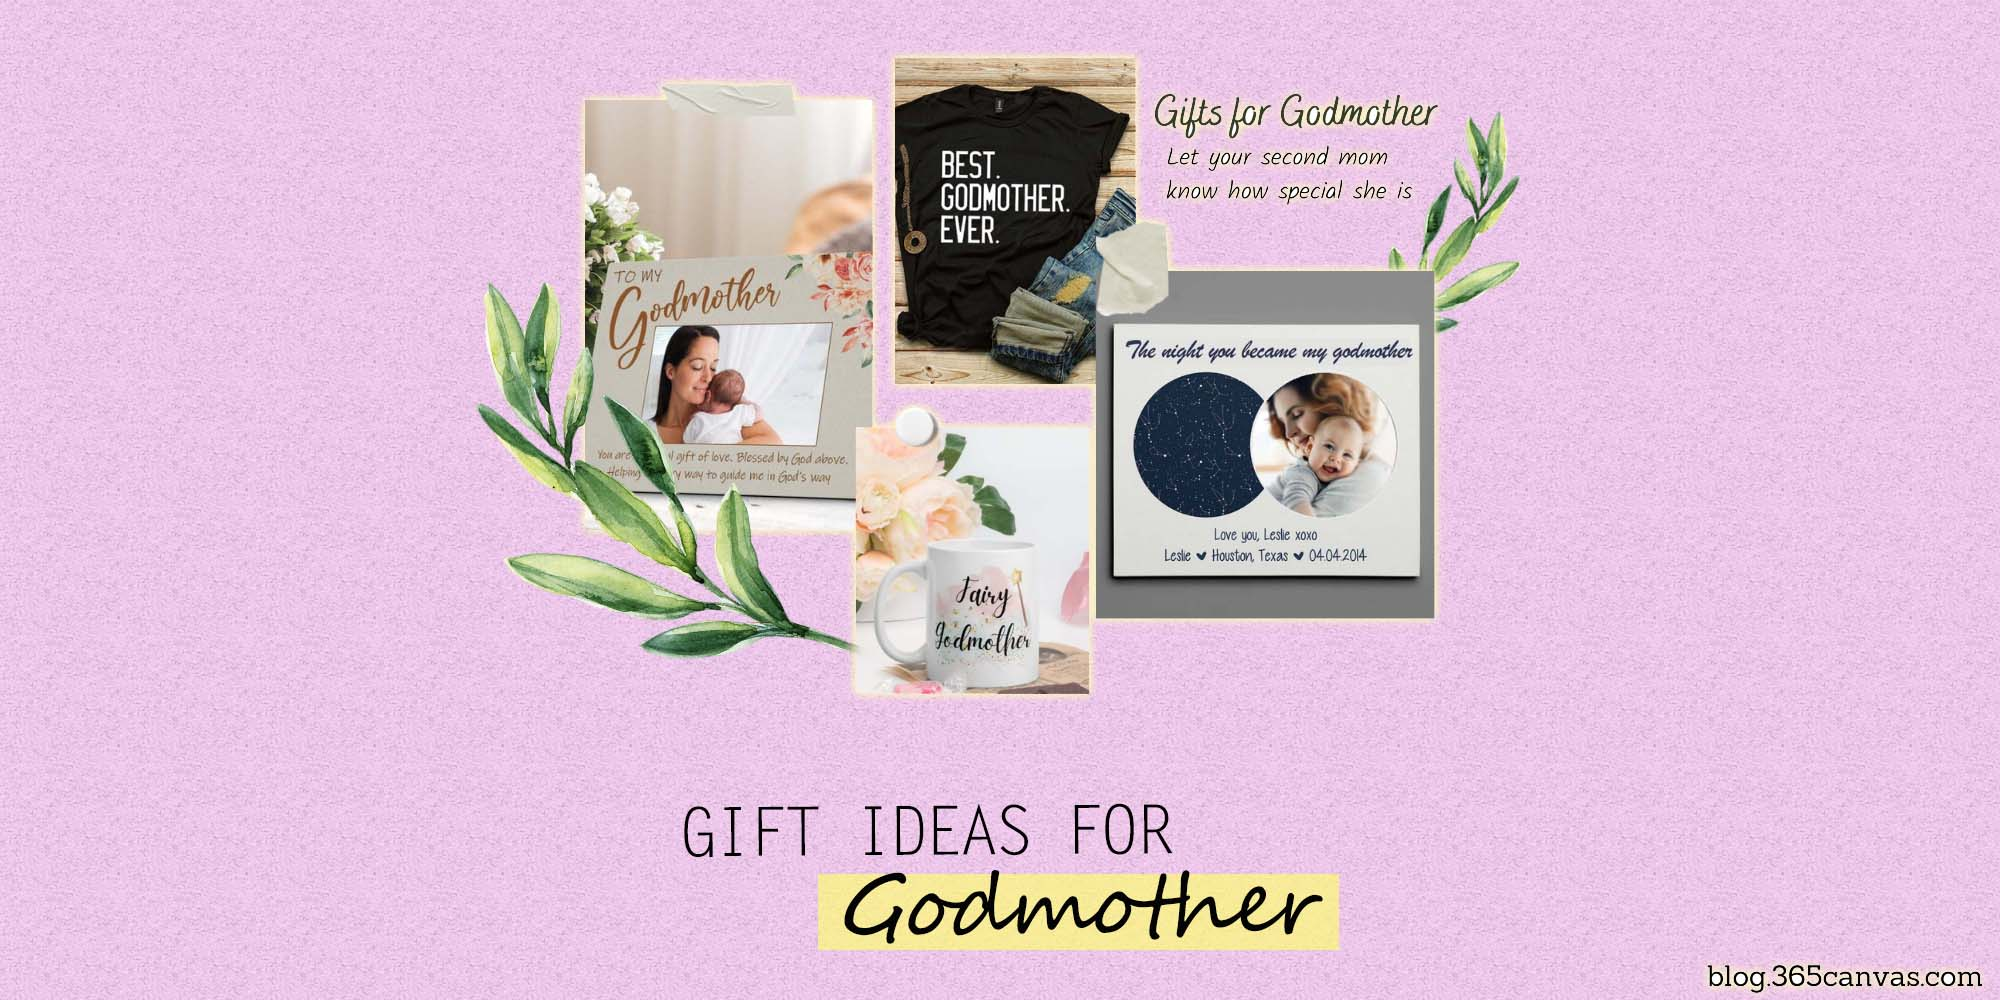 23 Godmother Gifts for The Special Second Mom (2021)